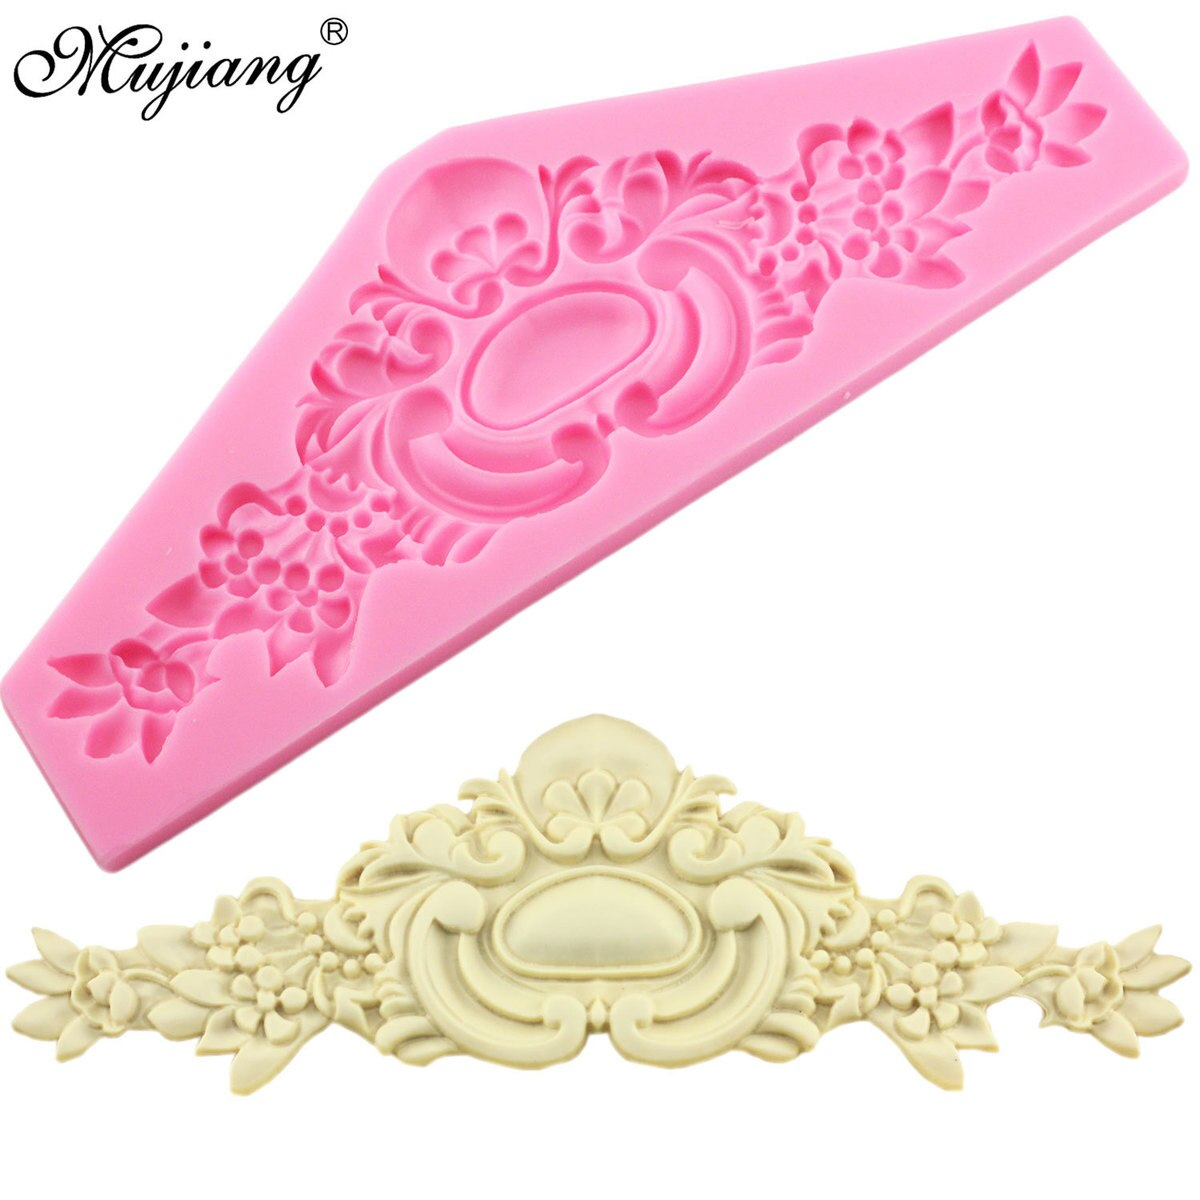 [해외]/European Crown Relief Silicone Mold Baking Flower Lace Chocolate Molds Wedding Fondant Decorating Tools Candy Fimo Clay Moulds